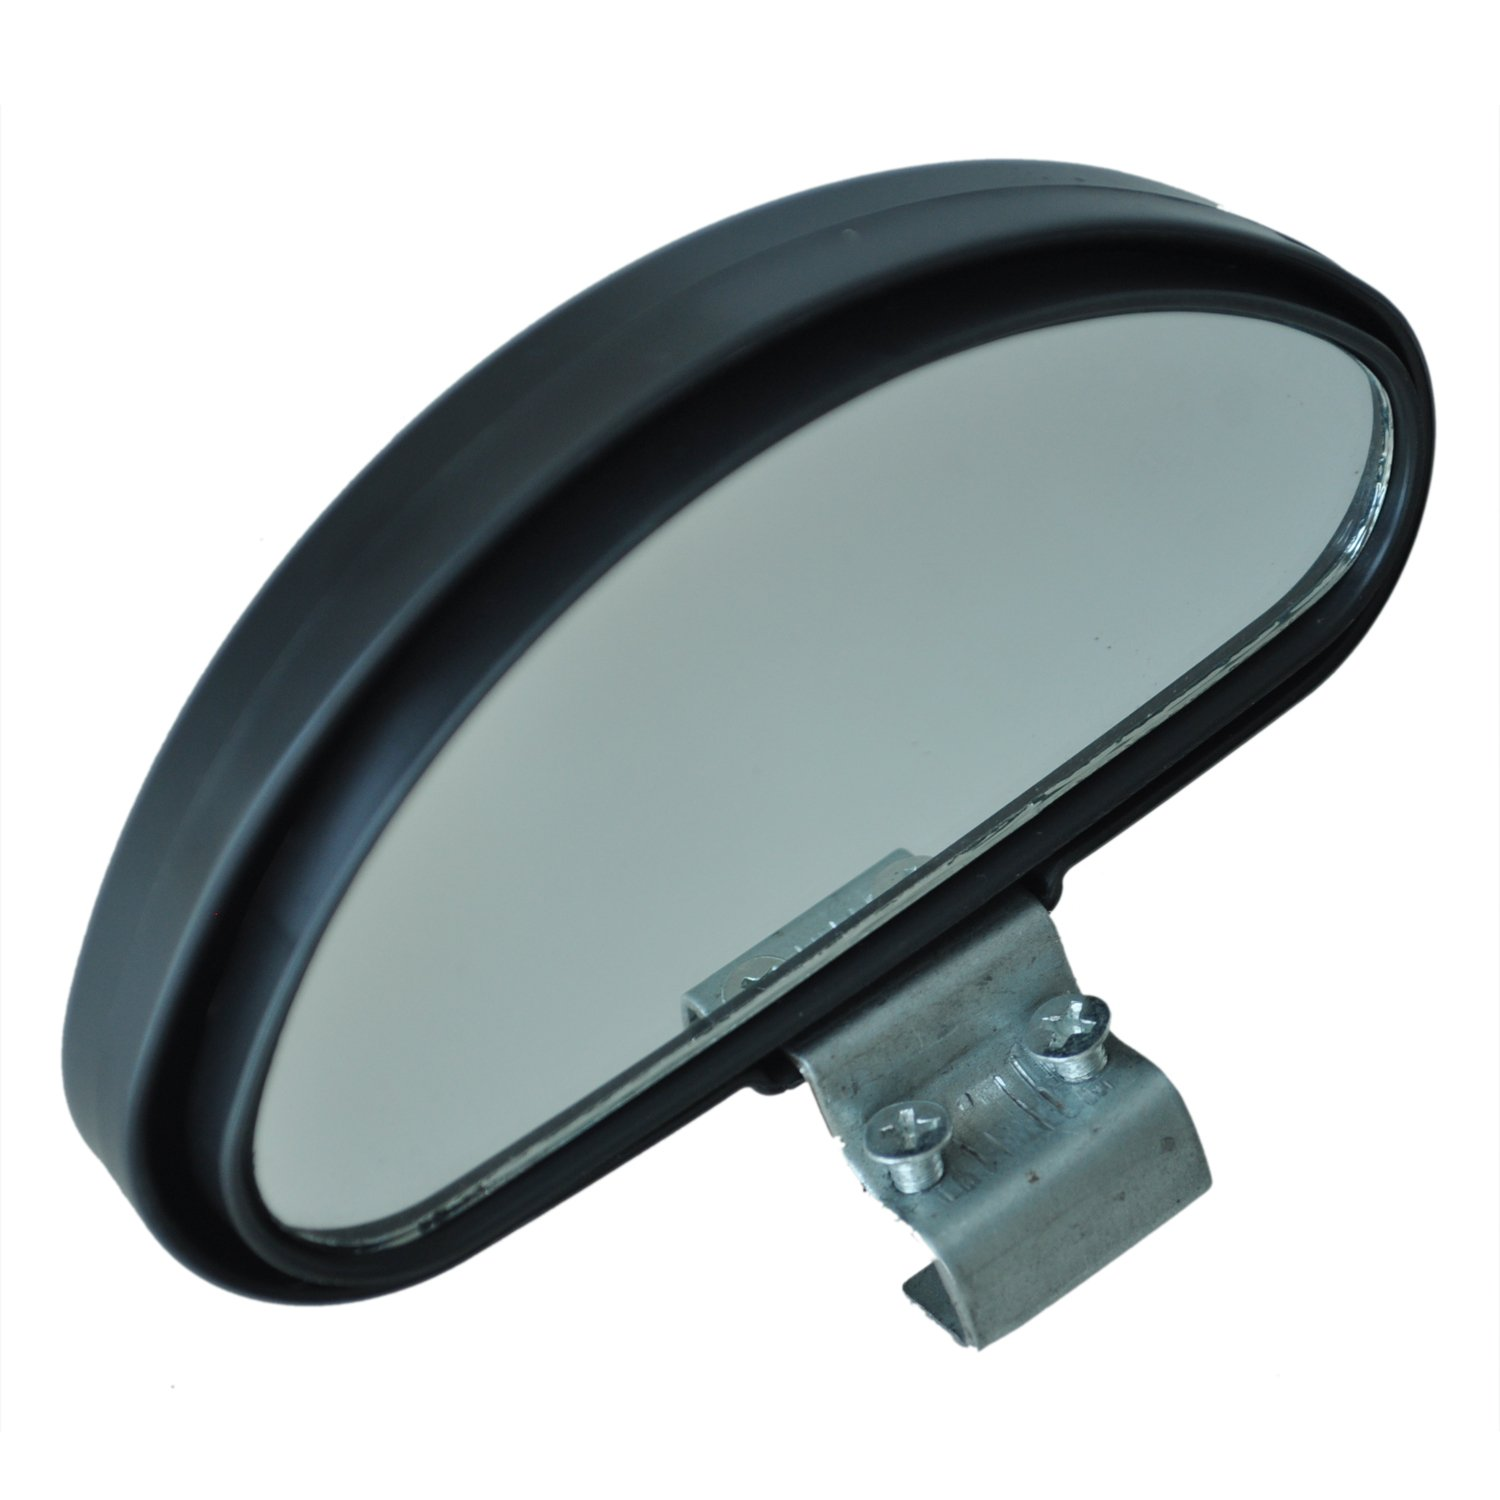 SODIAL(R) Black Plastic Casing Car Side Blindspot Blind Spot Mirror Wide Angle View LEPACA2971